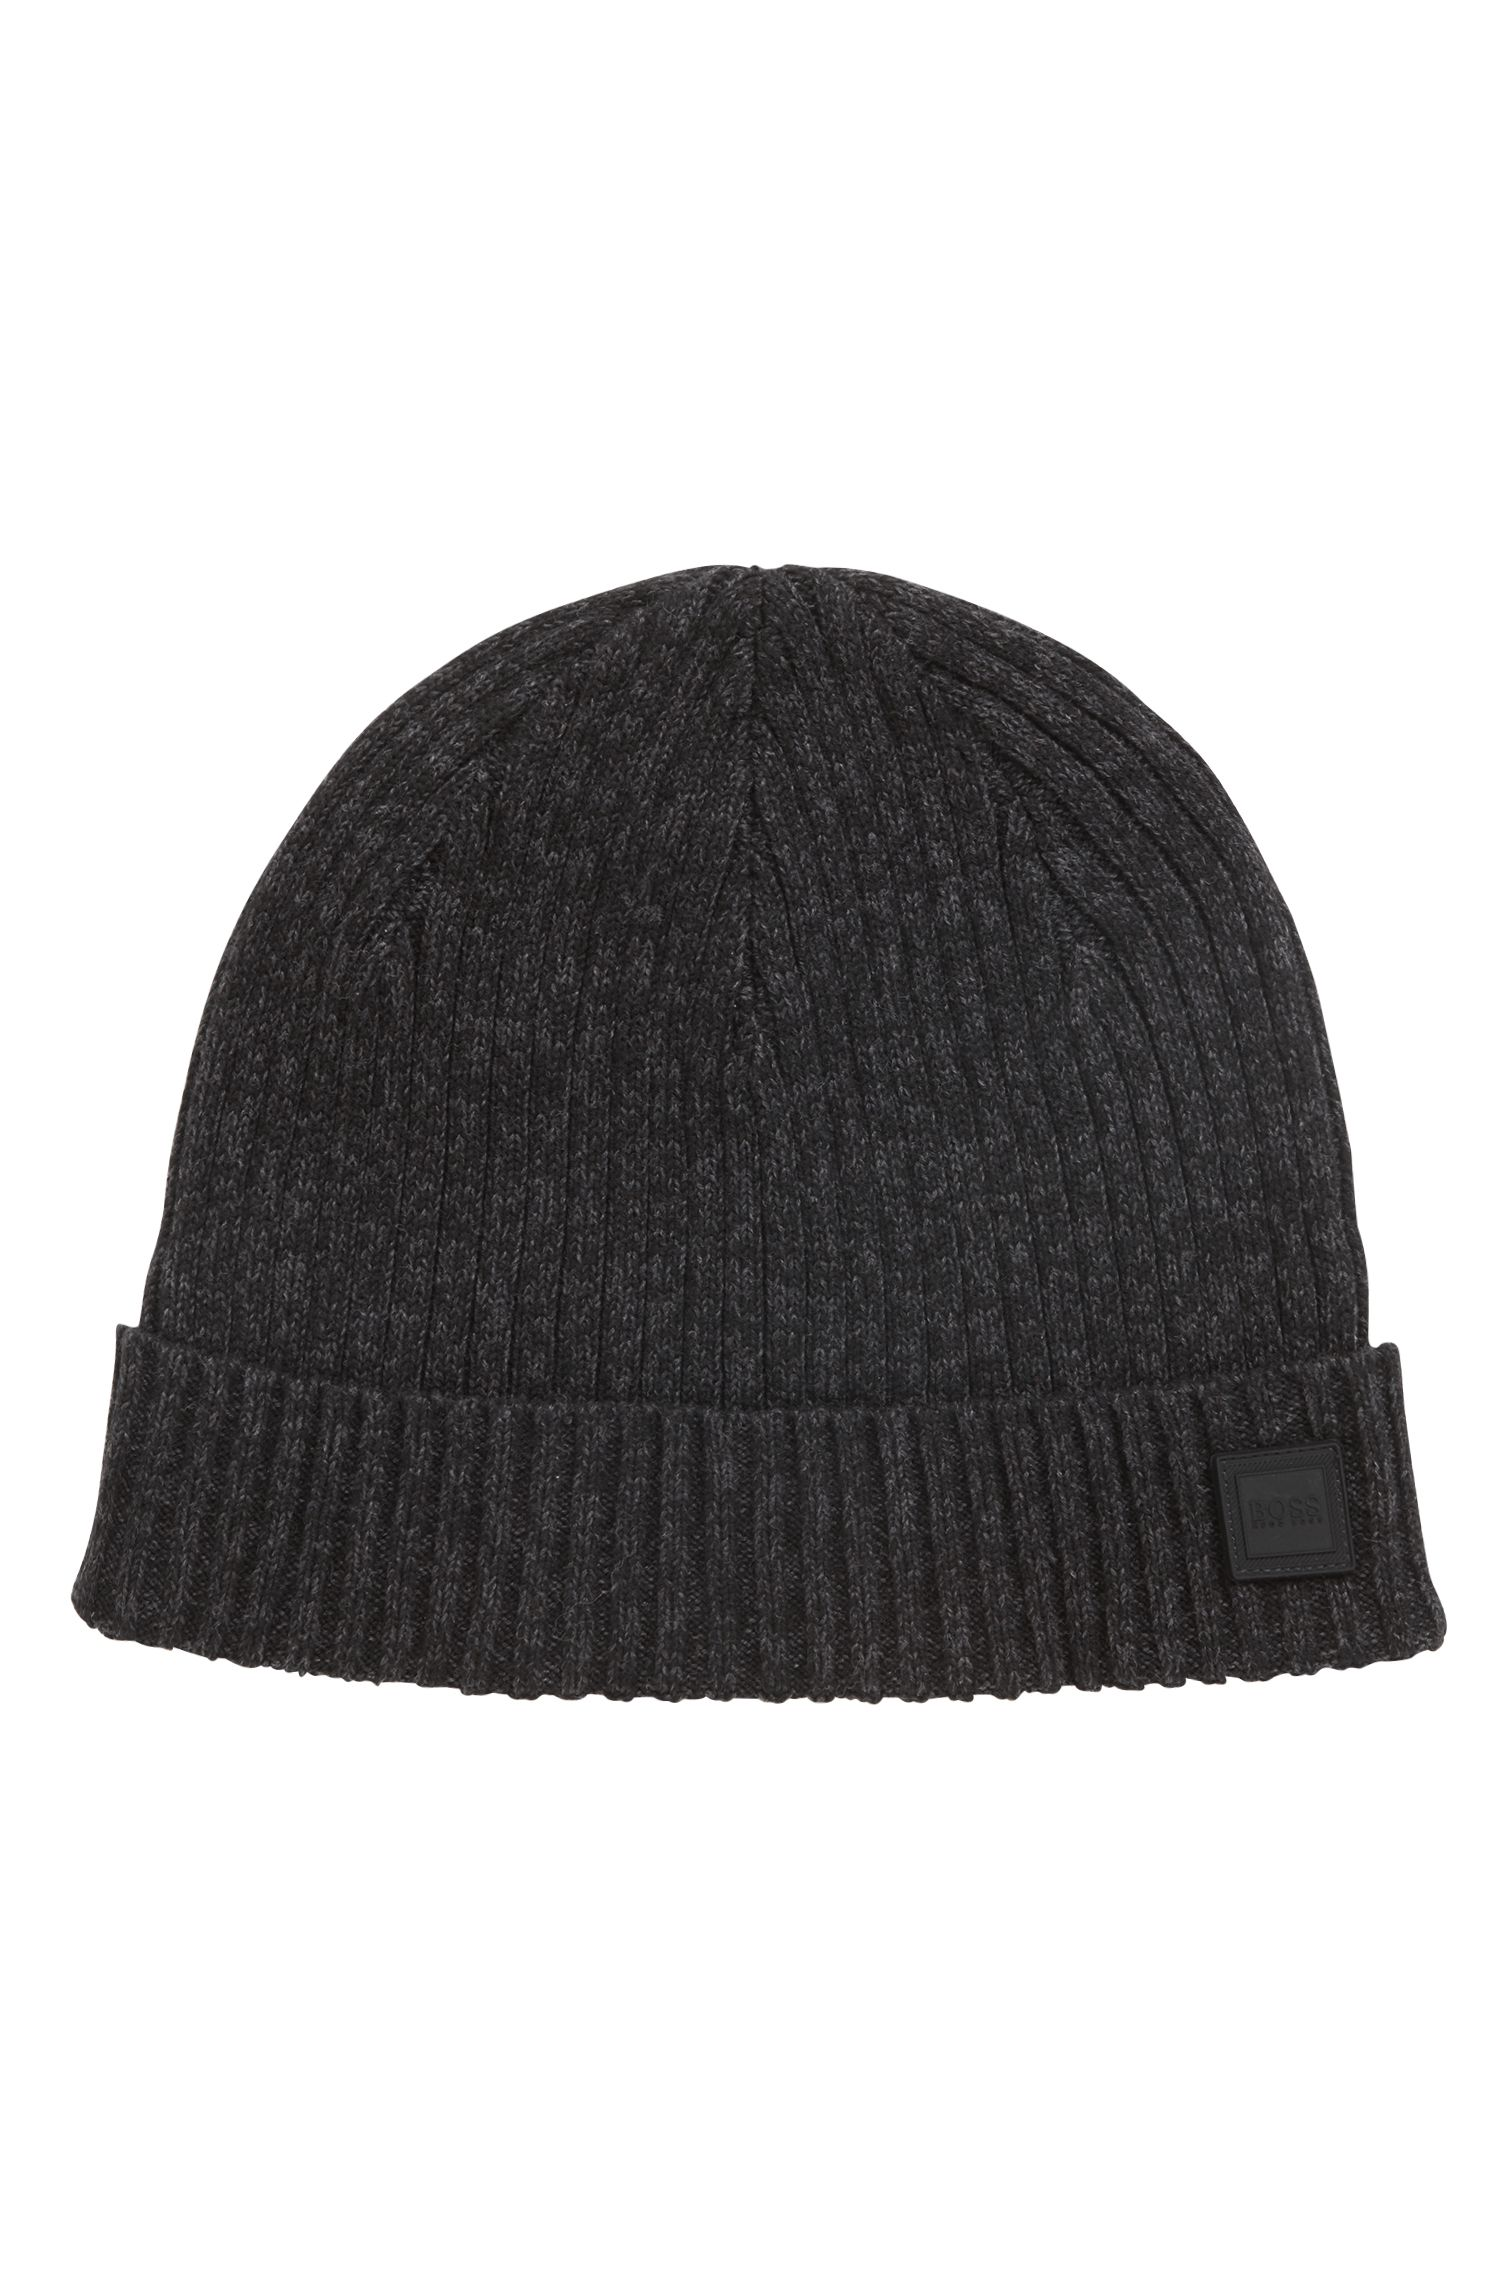 Ribbed beanie hat in a mouliné cotton blend